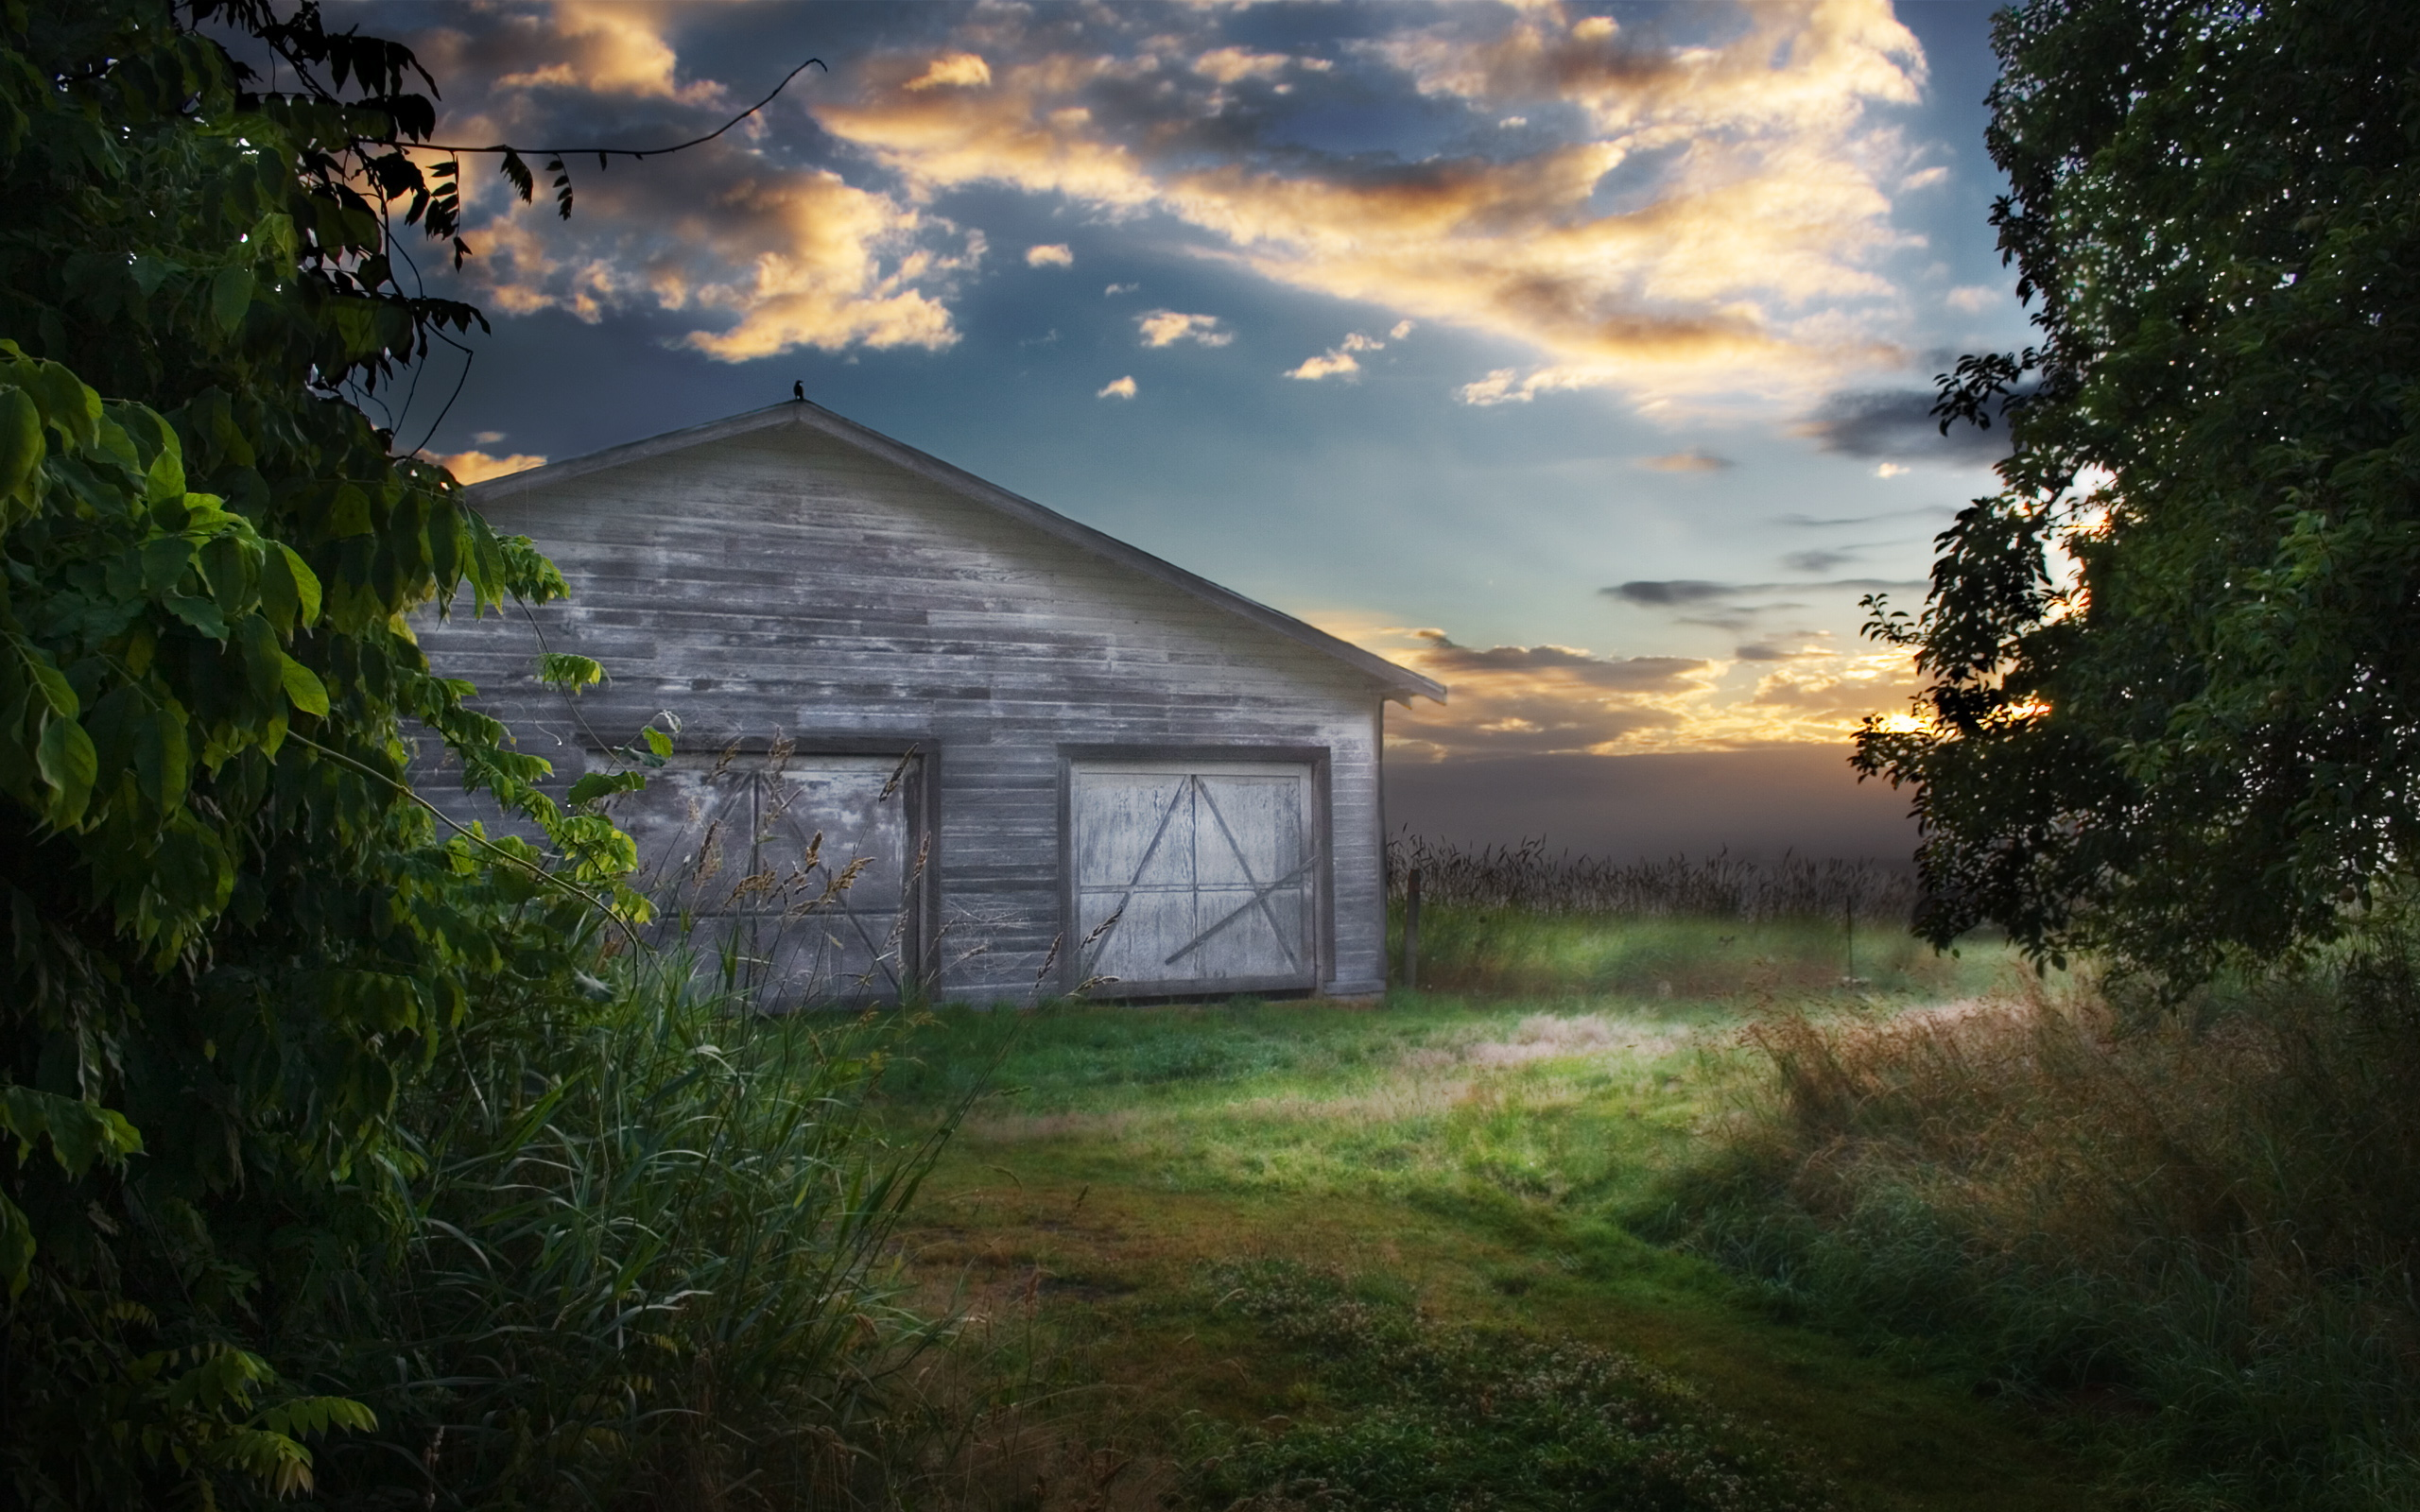 Good old house wallpaper full hd pictures for House image full hd